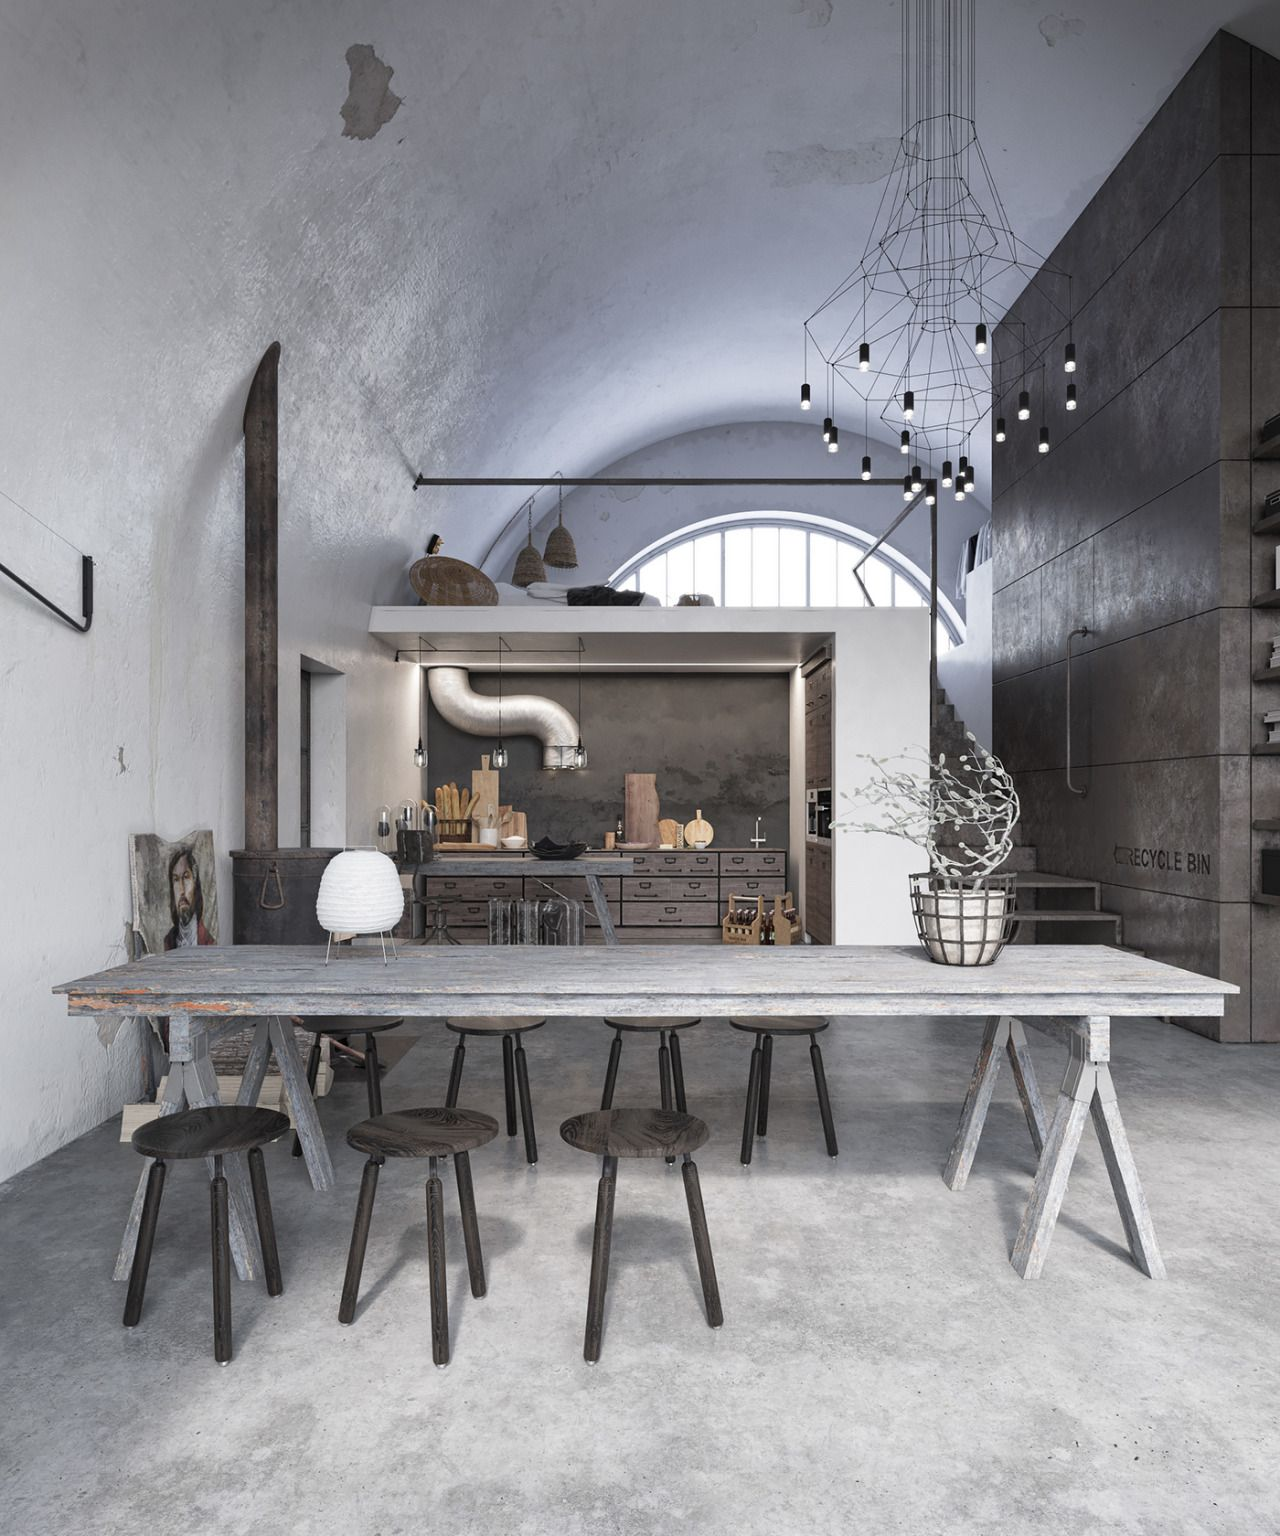 Grey industrial chicago loft grey industrial chicago loft style deco modern interior design